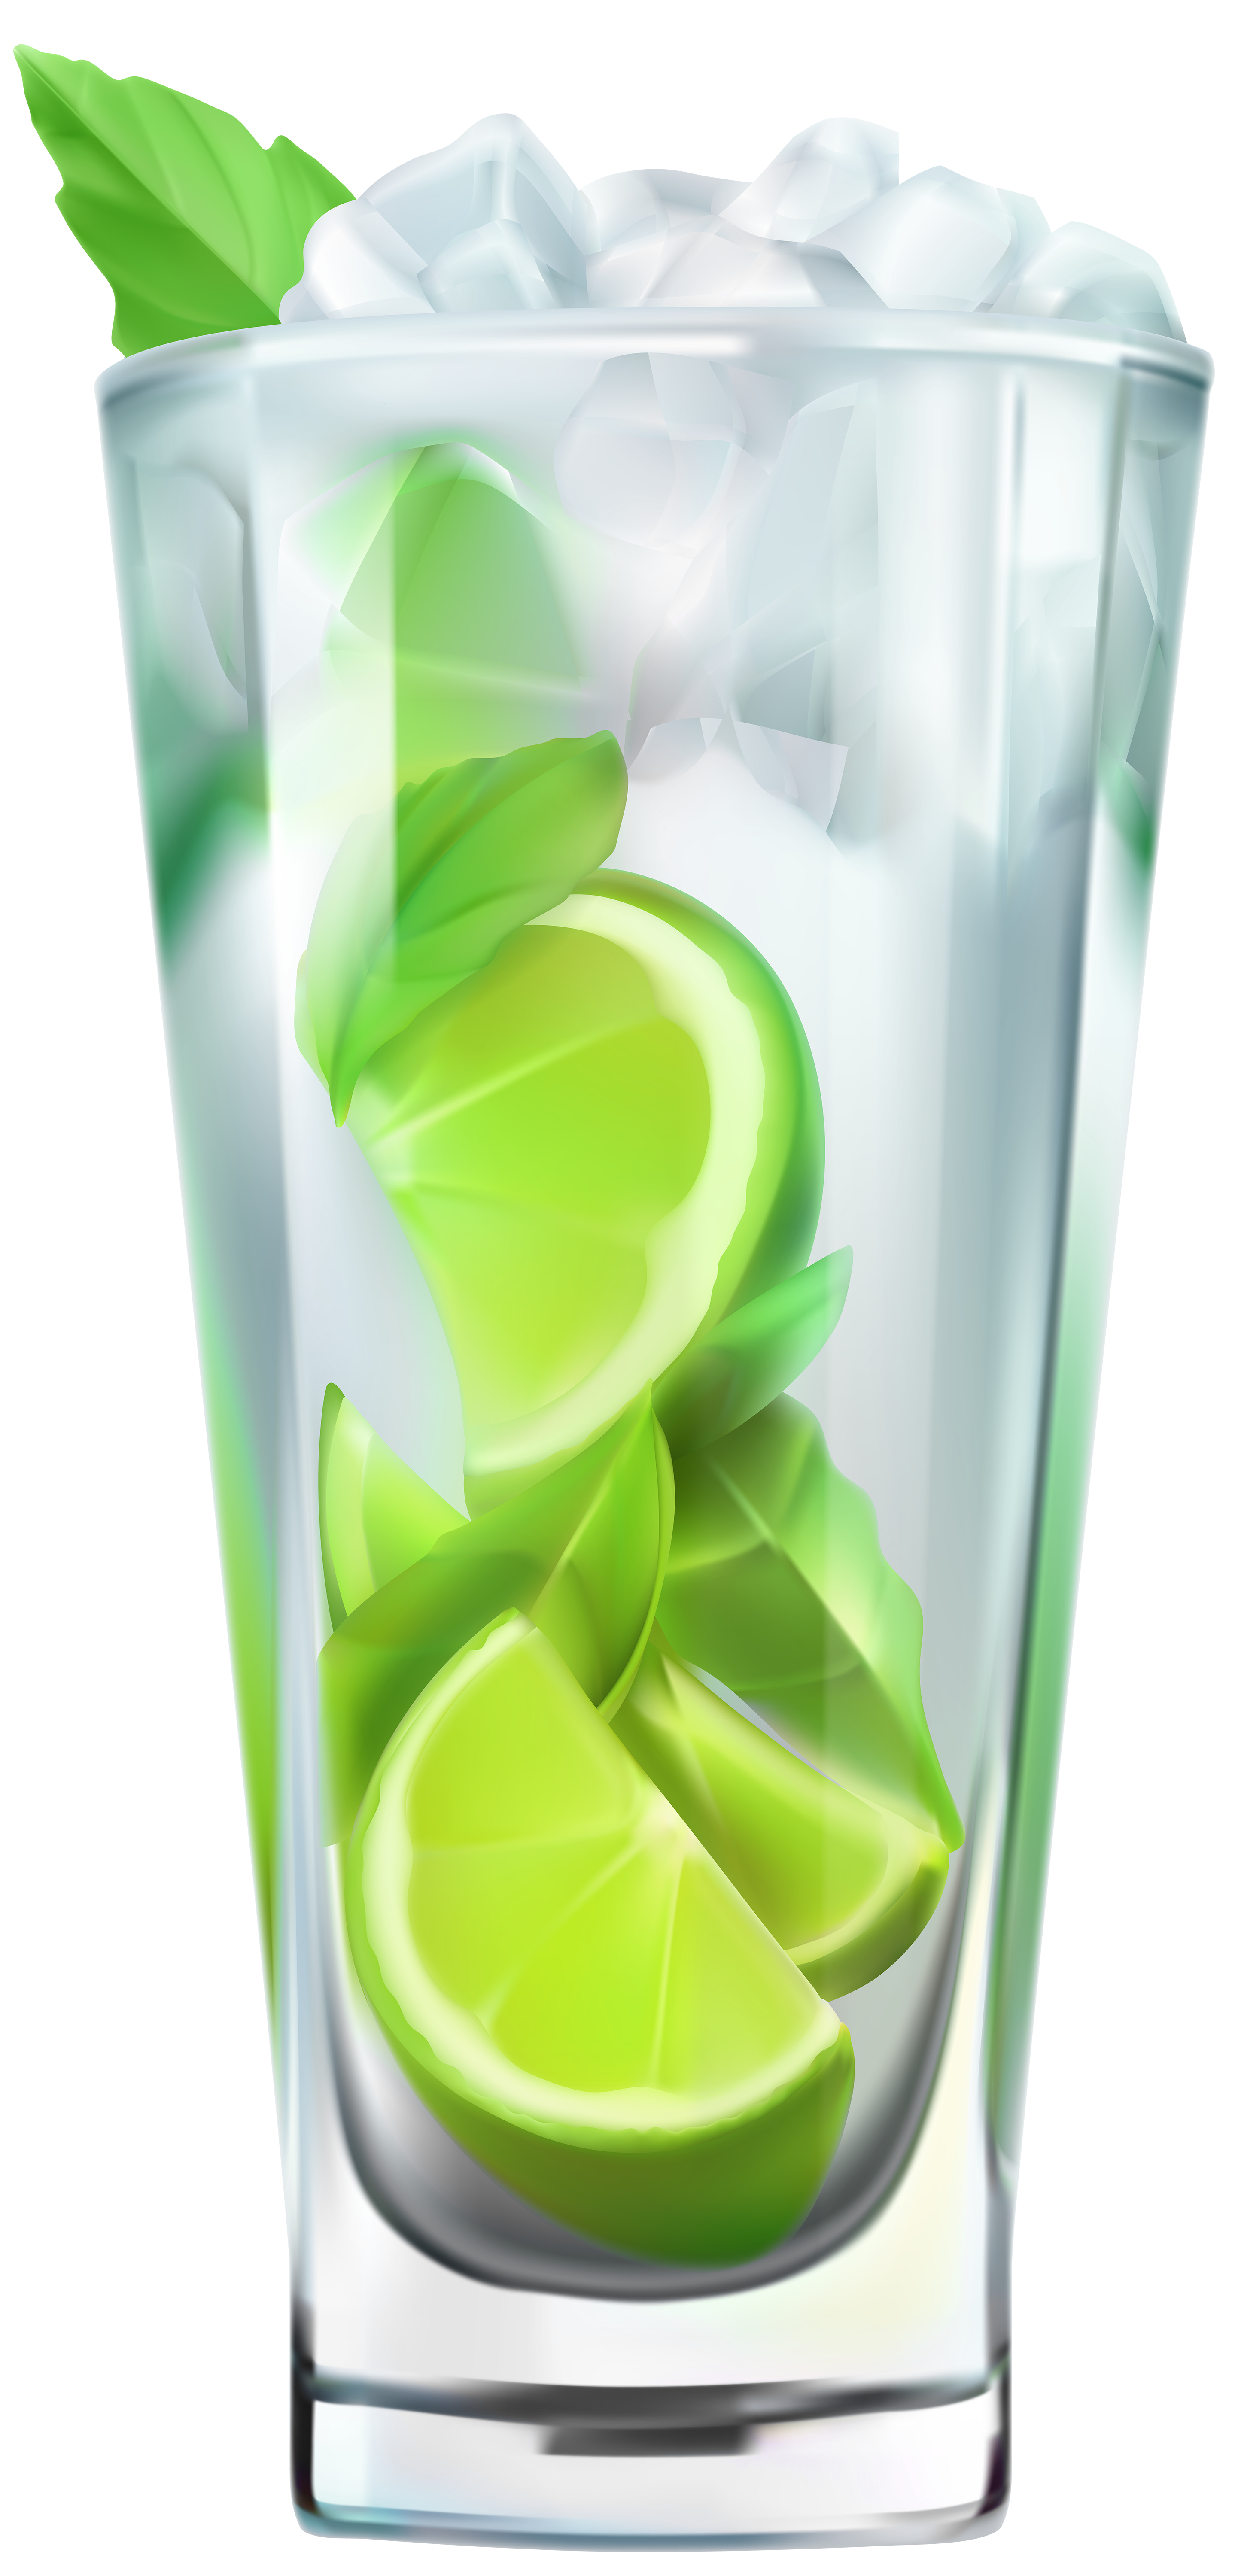 Png clip art image. Cocktail clipart mojito